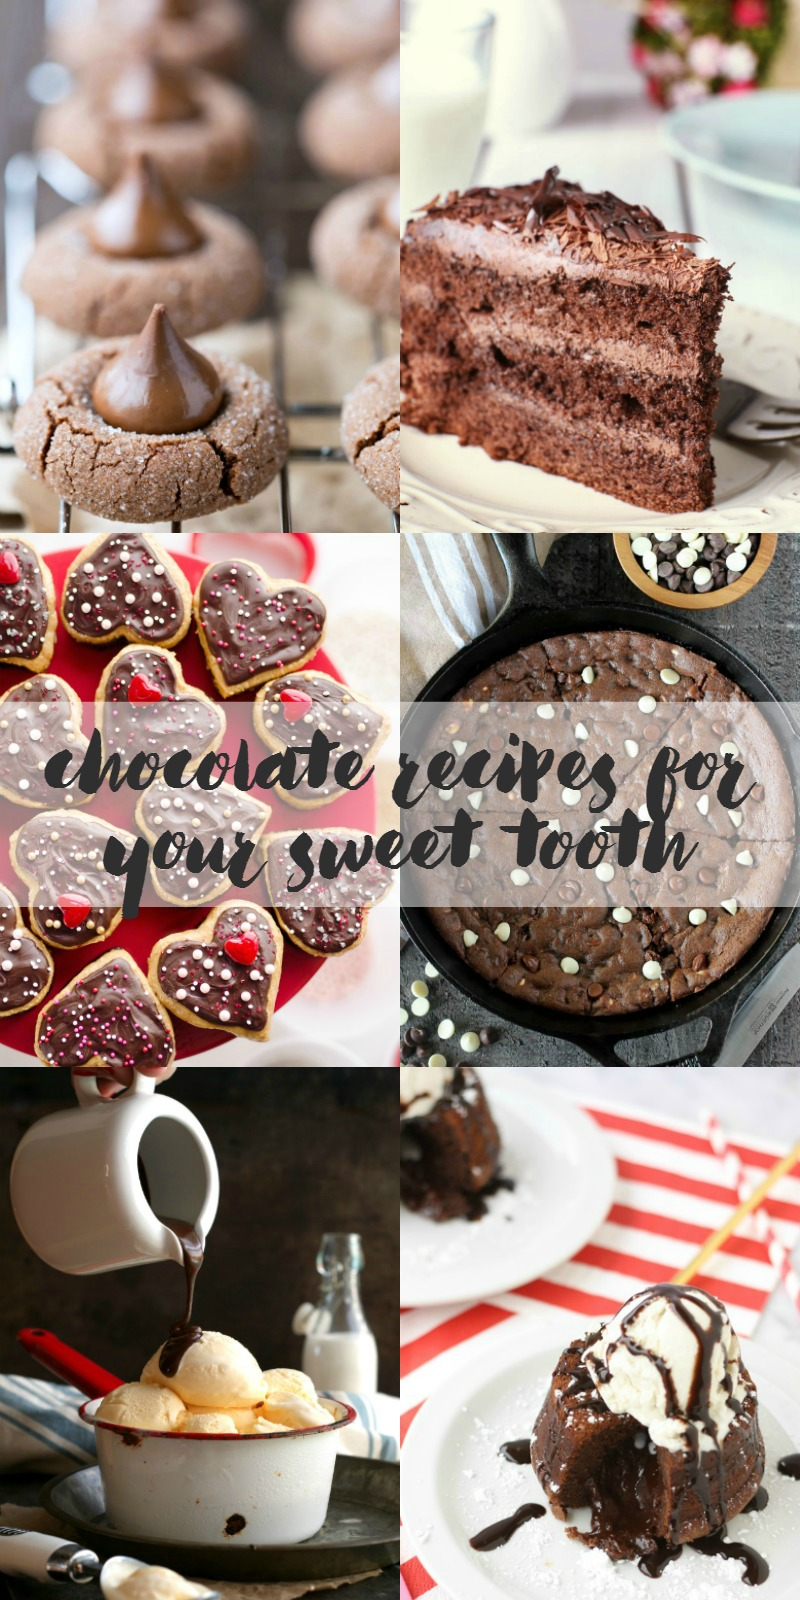 Chocolate Recipes For Your Sweet Tooth #feastndevour